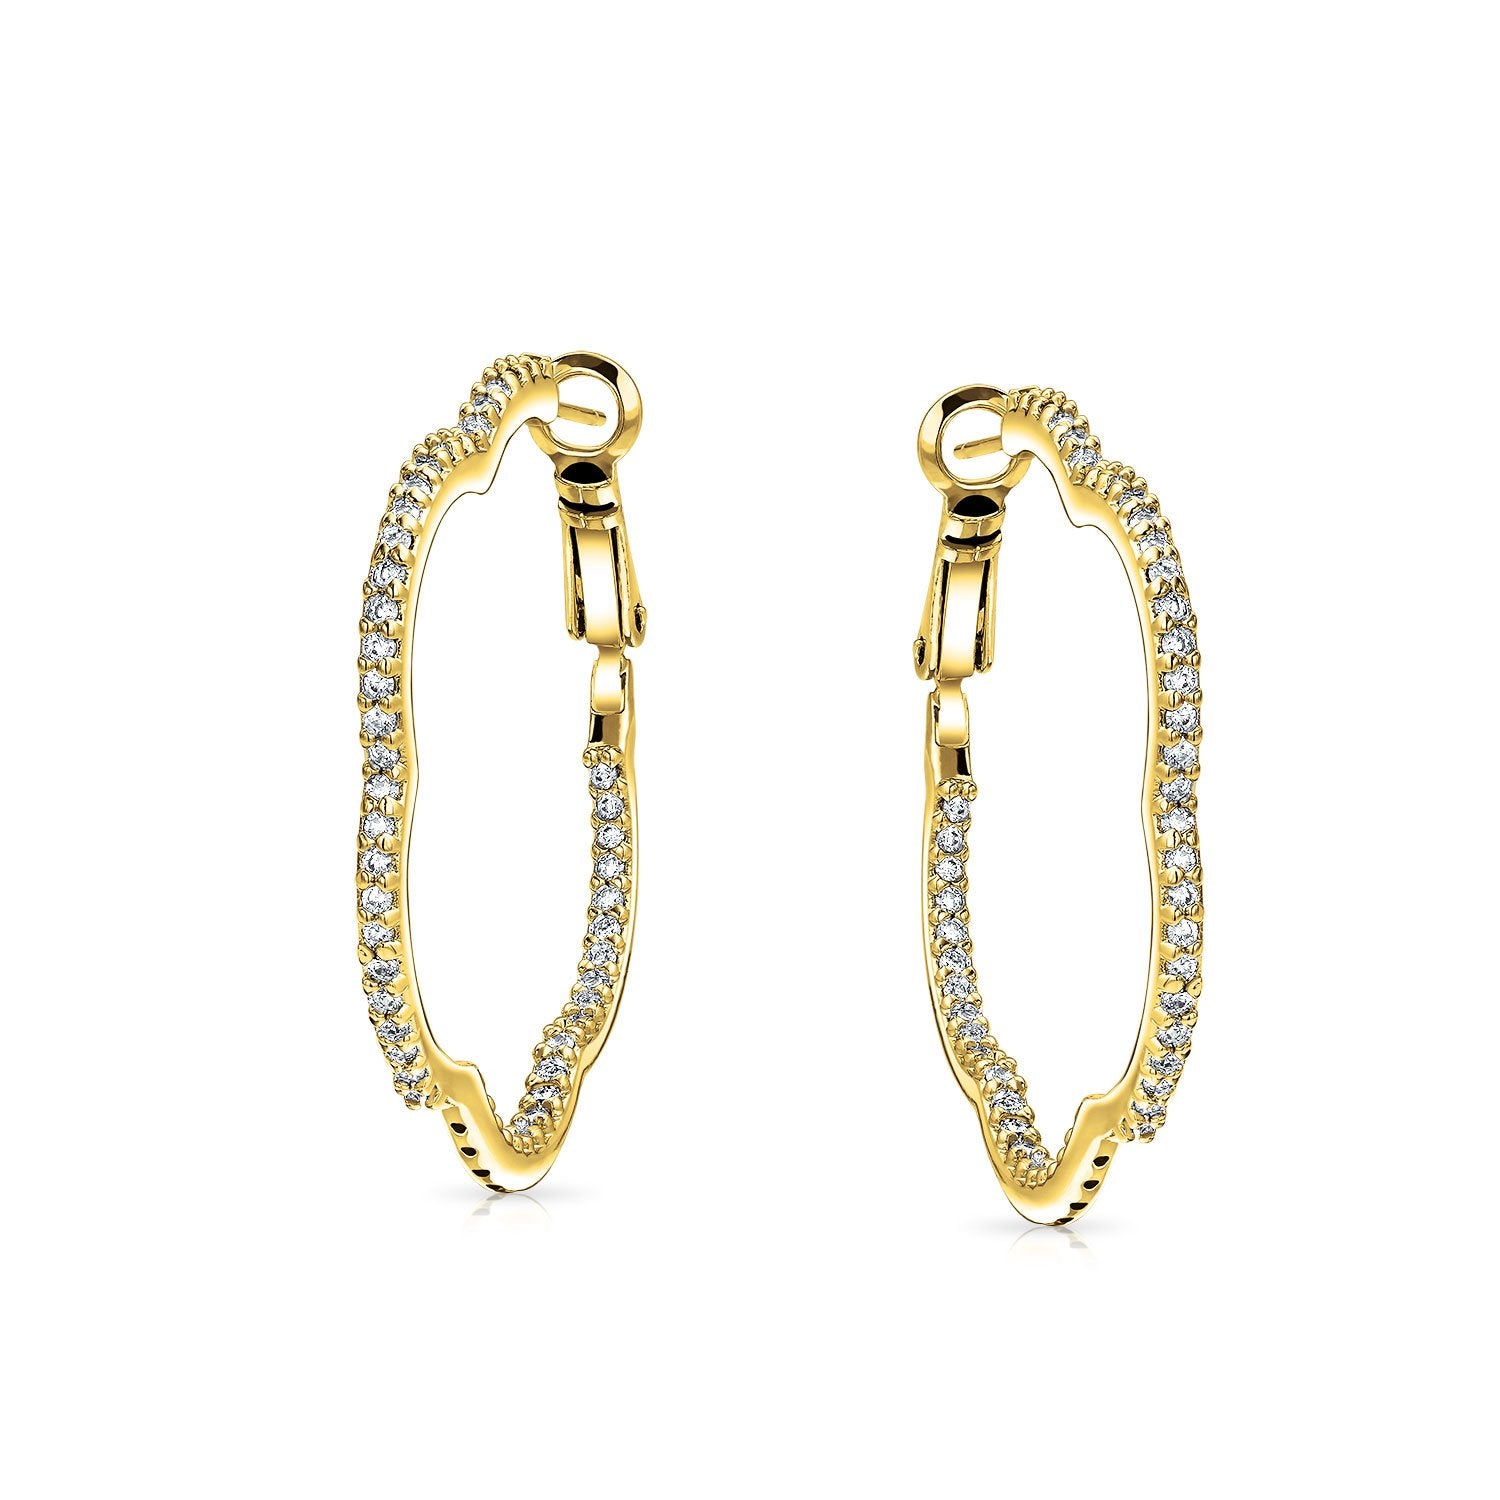 Flower Clover Shaped Pave CZ Cubic Zirconia Large Hoop Earrings For Women 14K Gold Silver Plated Brass 1.6 Inch Dia